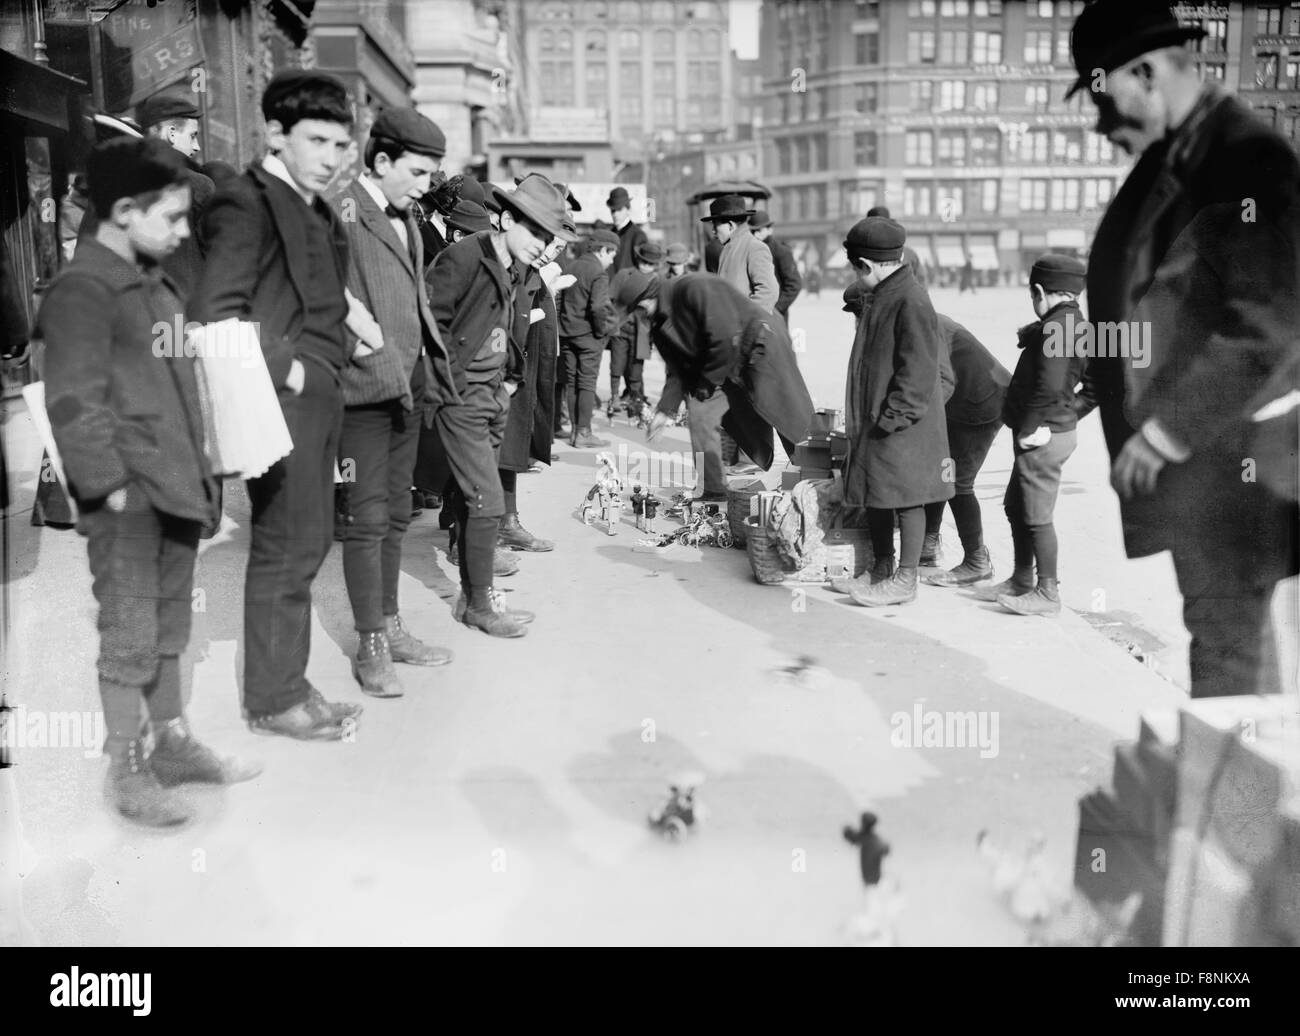 Group of Gutter Toy Merchants and Young Boys, New York City, USA, 1903 - Stock Image